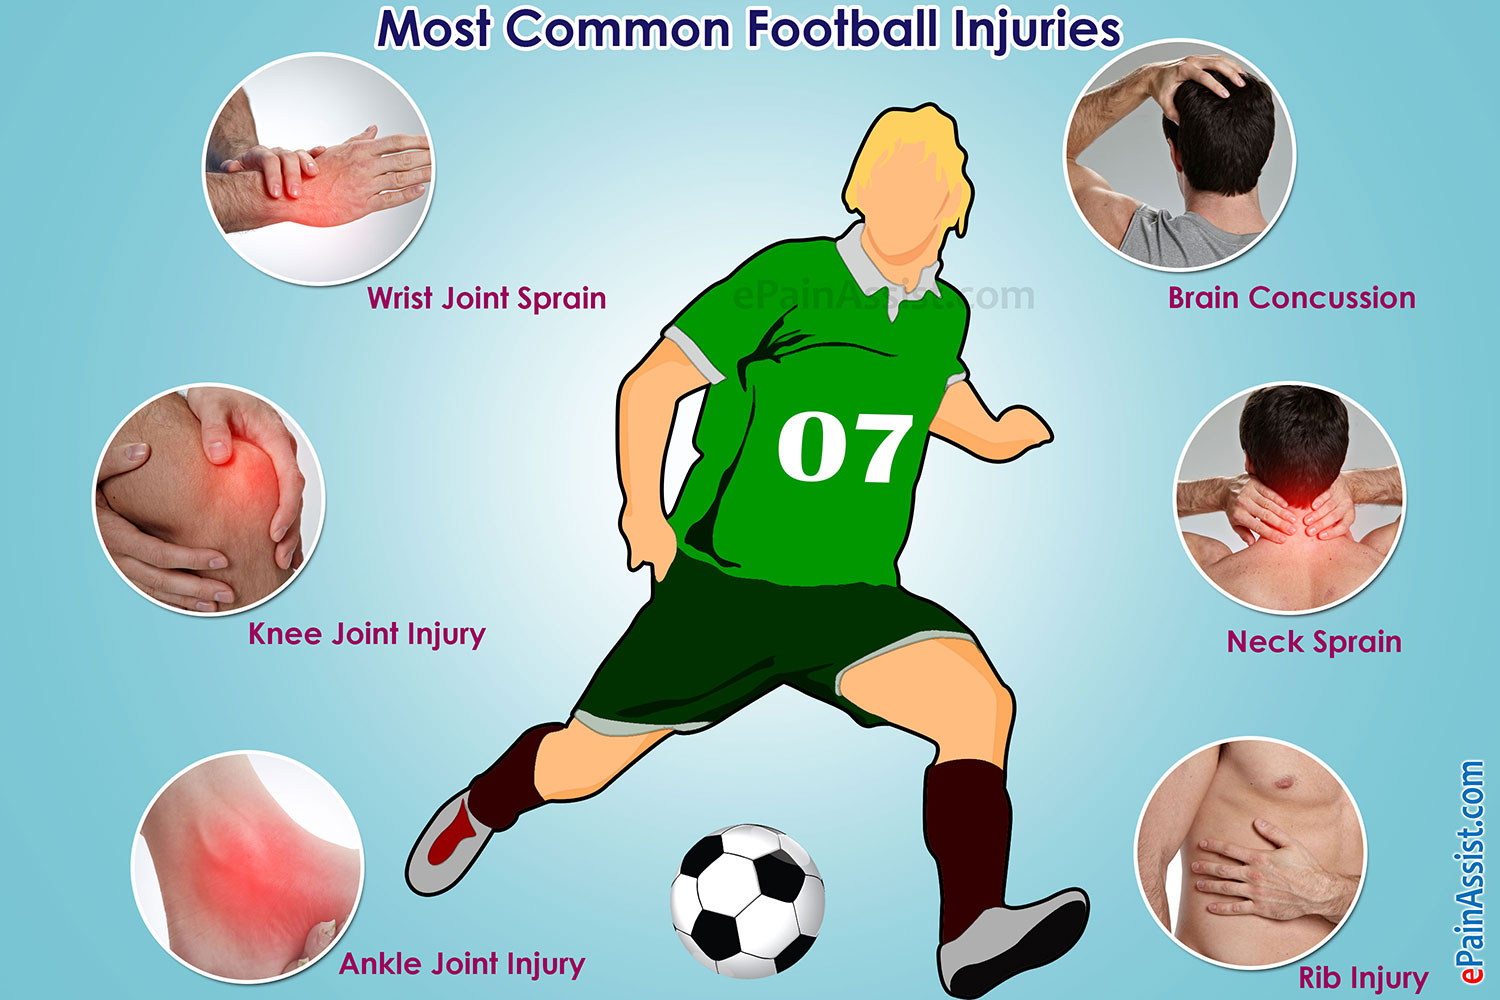 Common Football Injuries Are Sprain of Neck, Wrist, Ankle, Knee